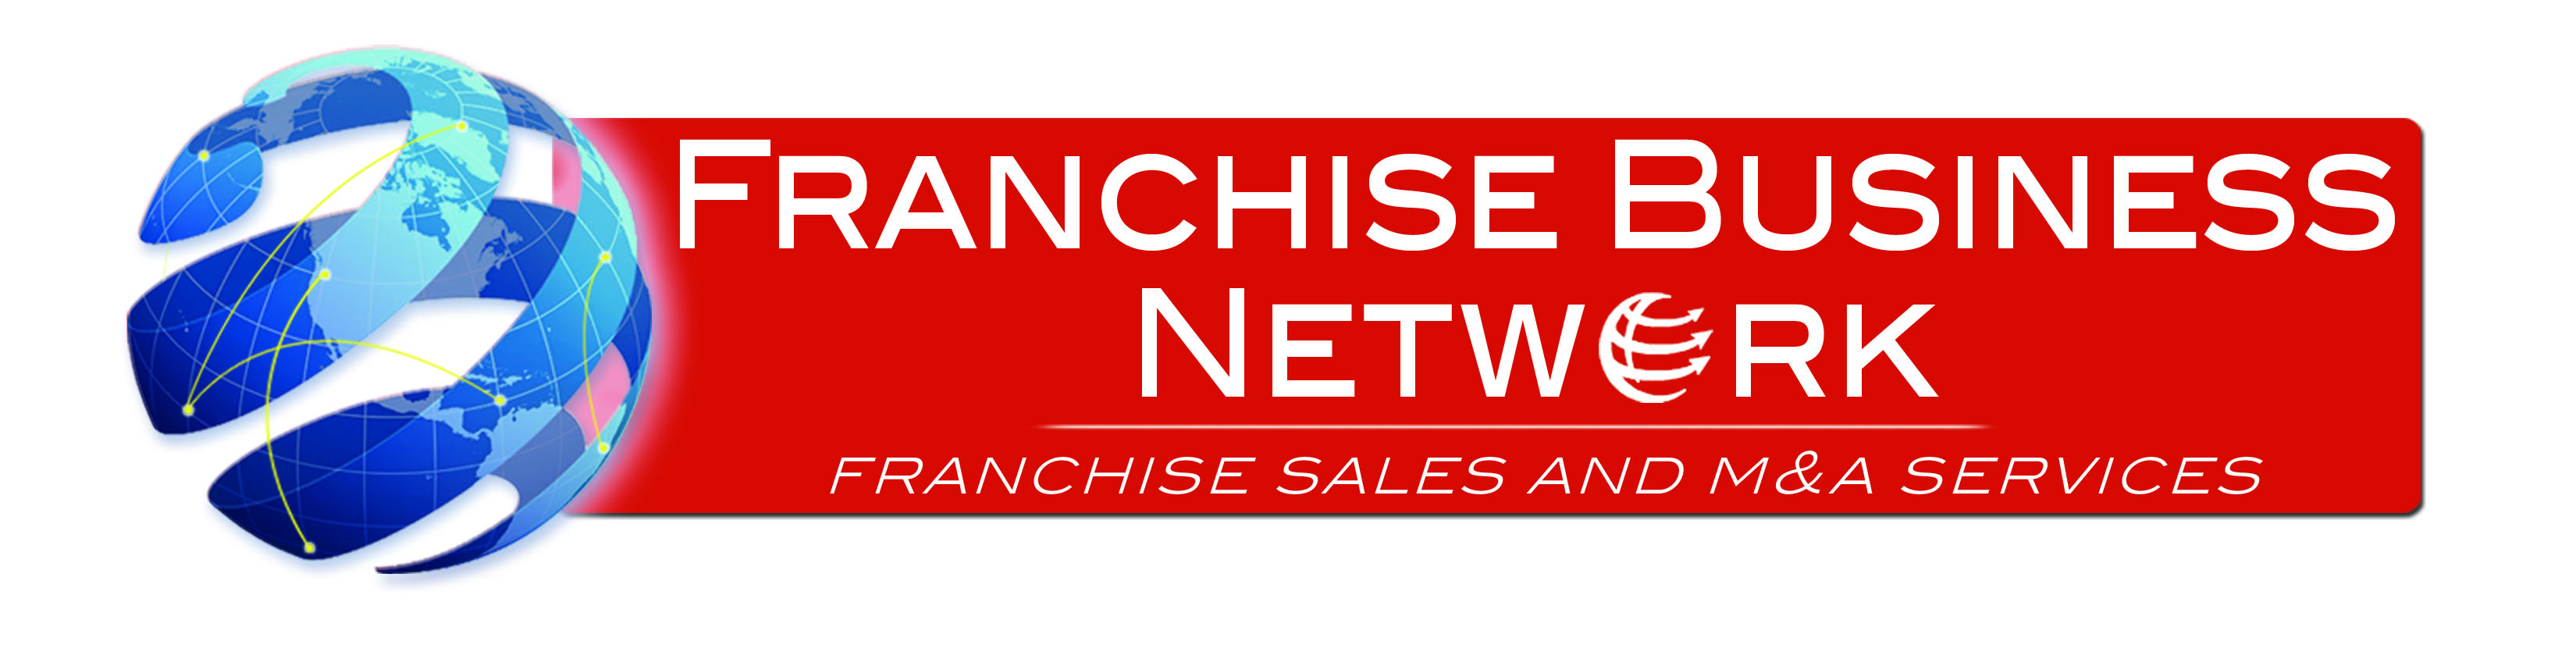 Franchise Business Network Logo